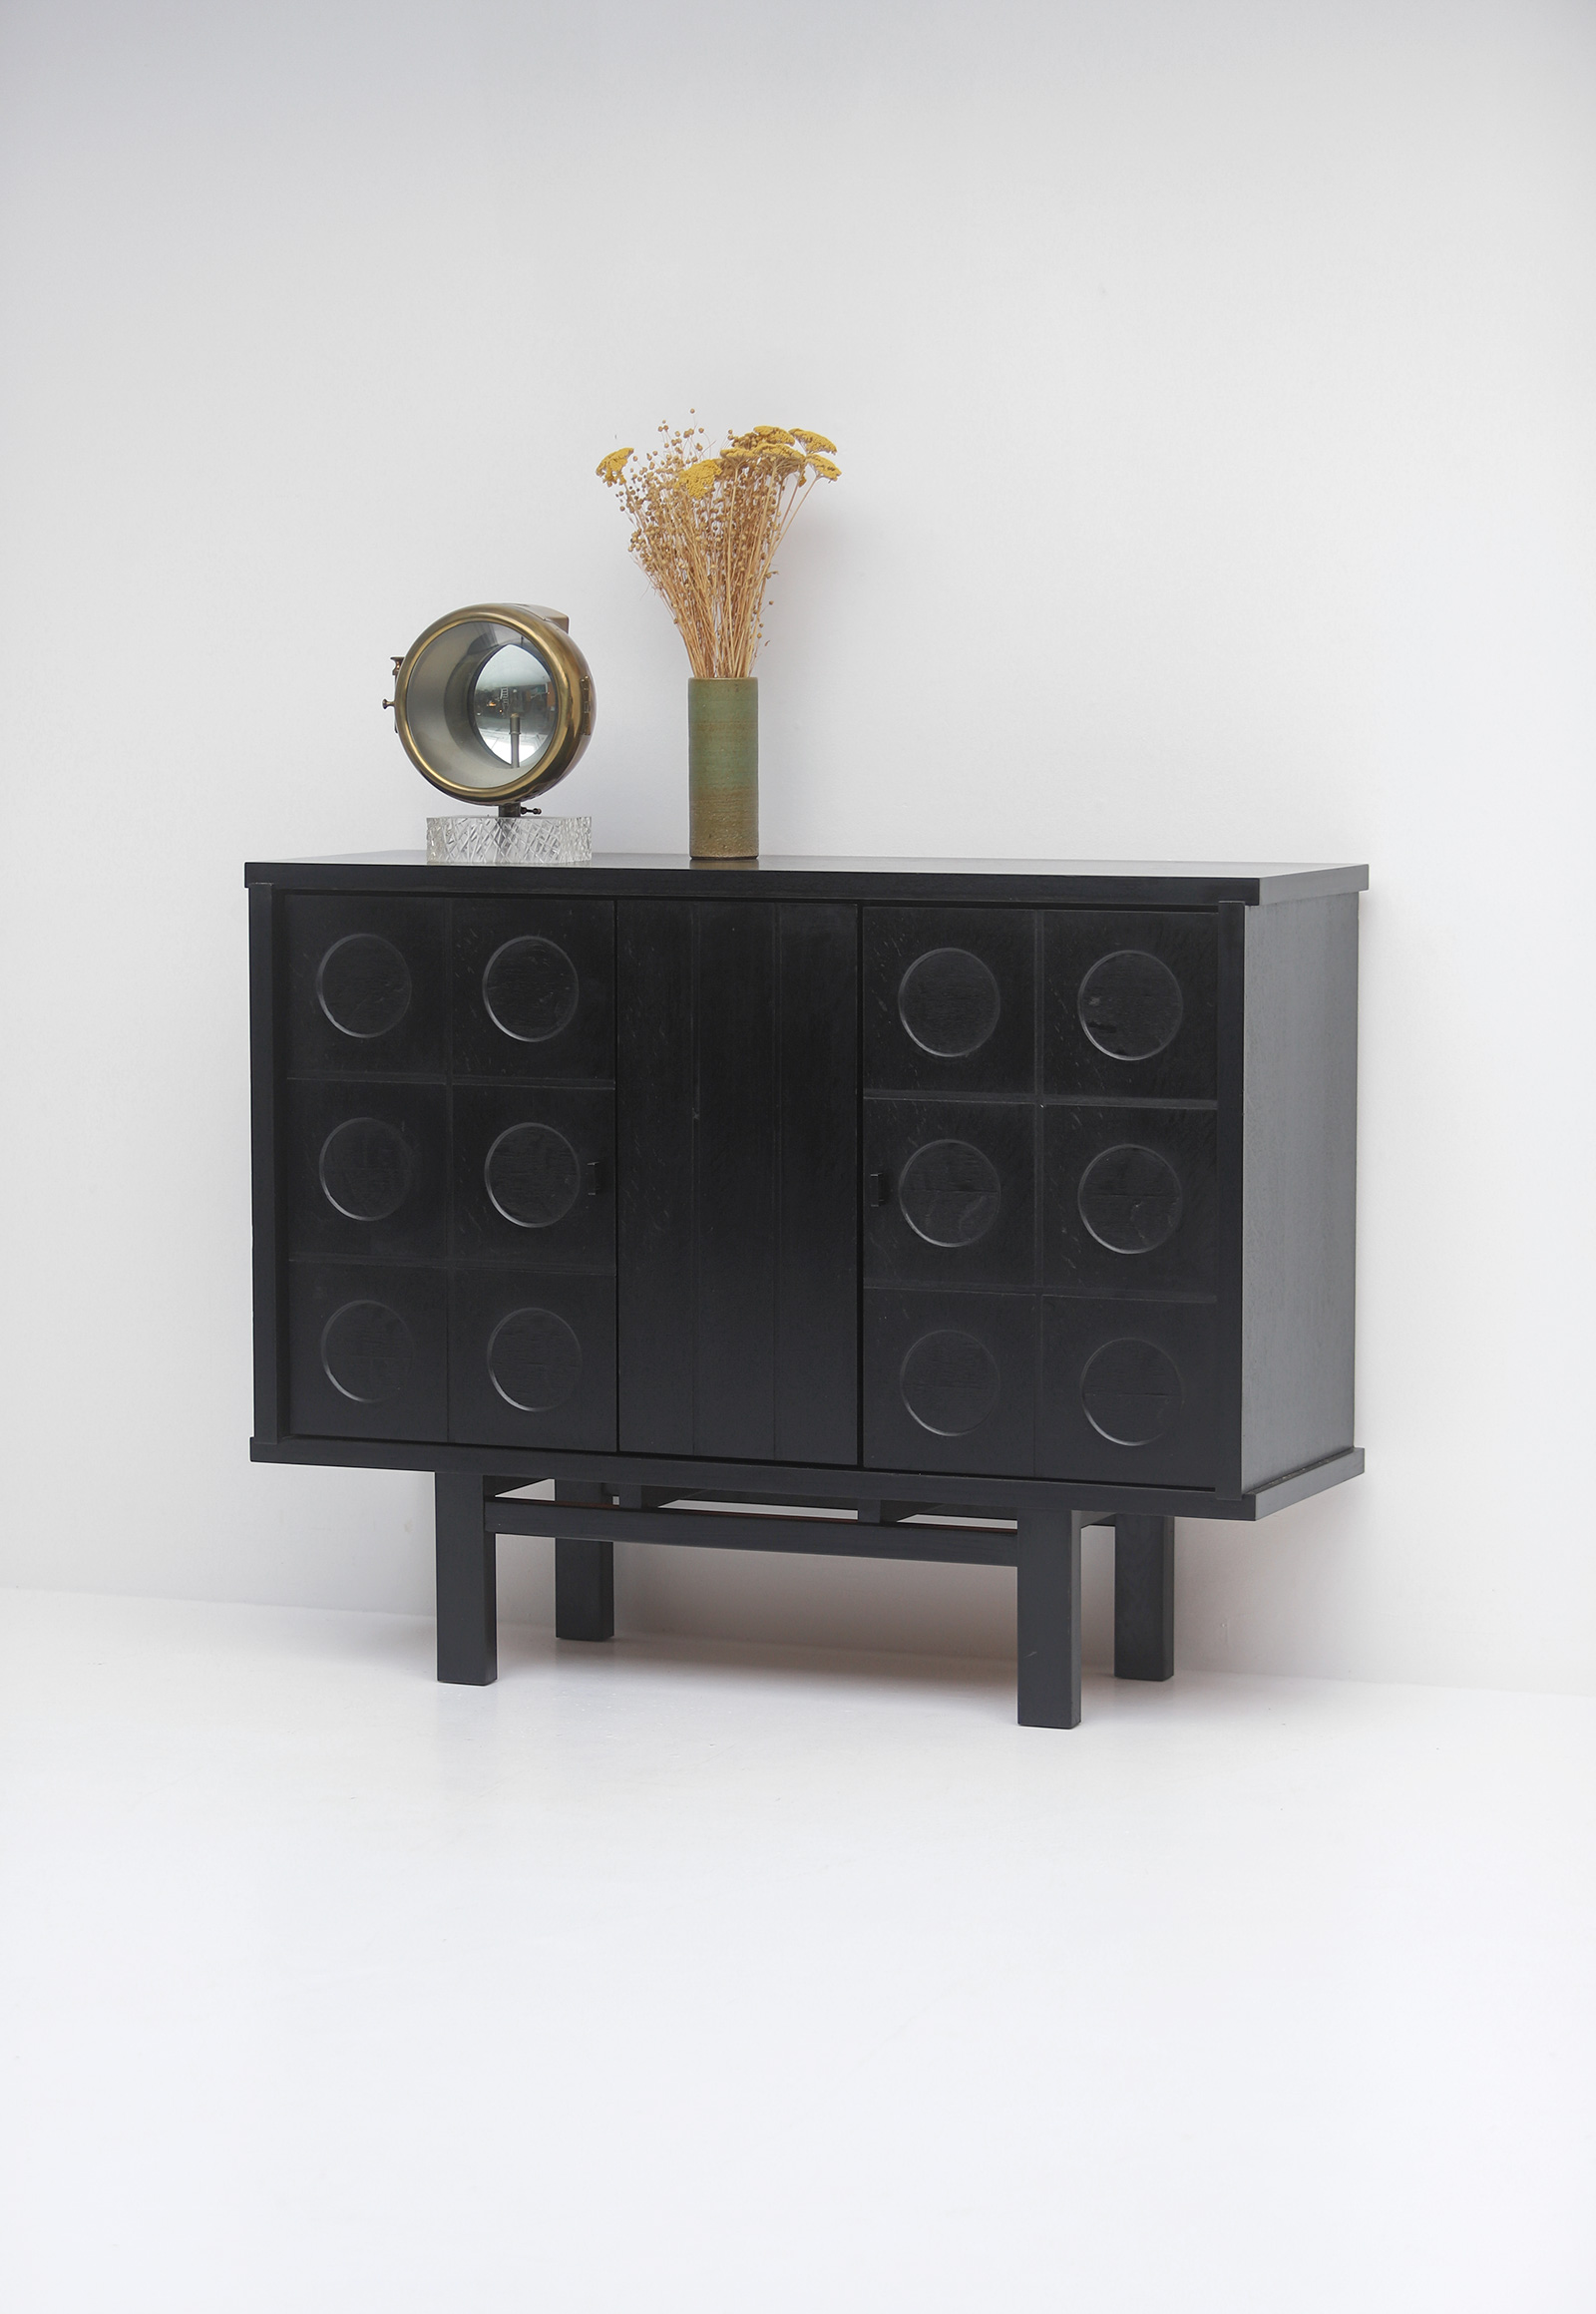 Decorative Black Cabinet with Patterned doors image 6